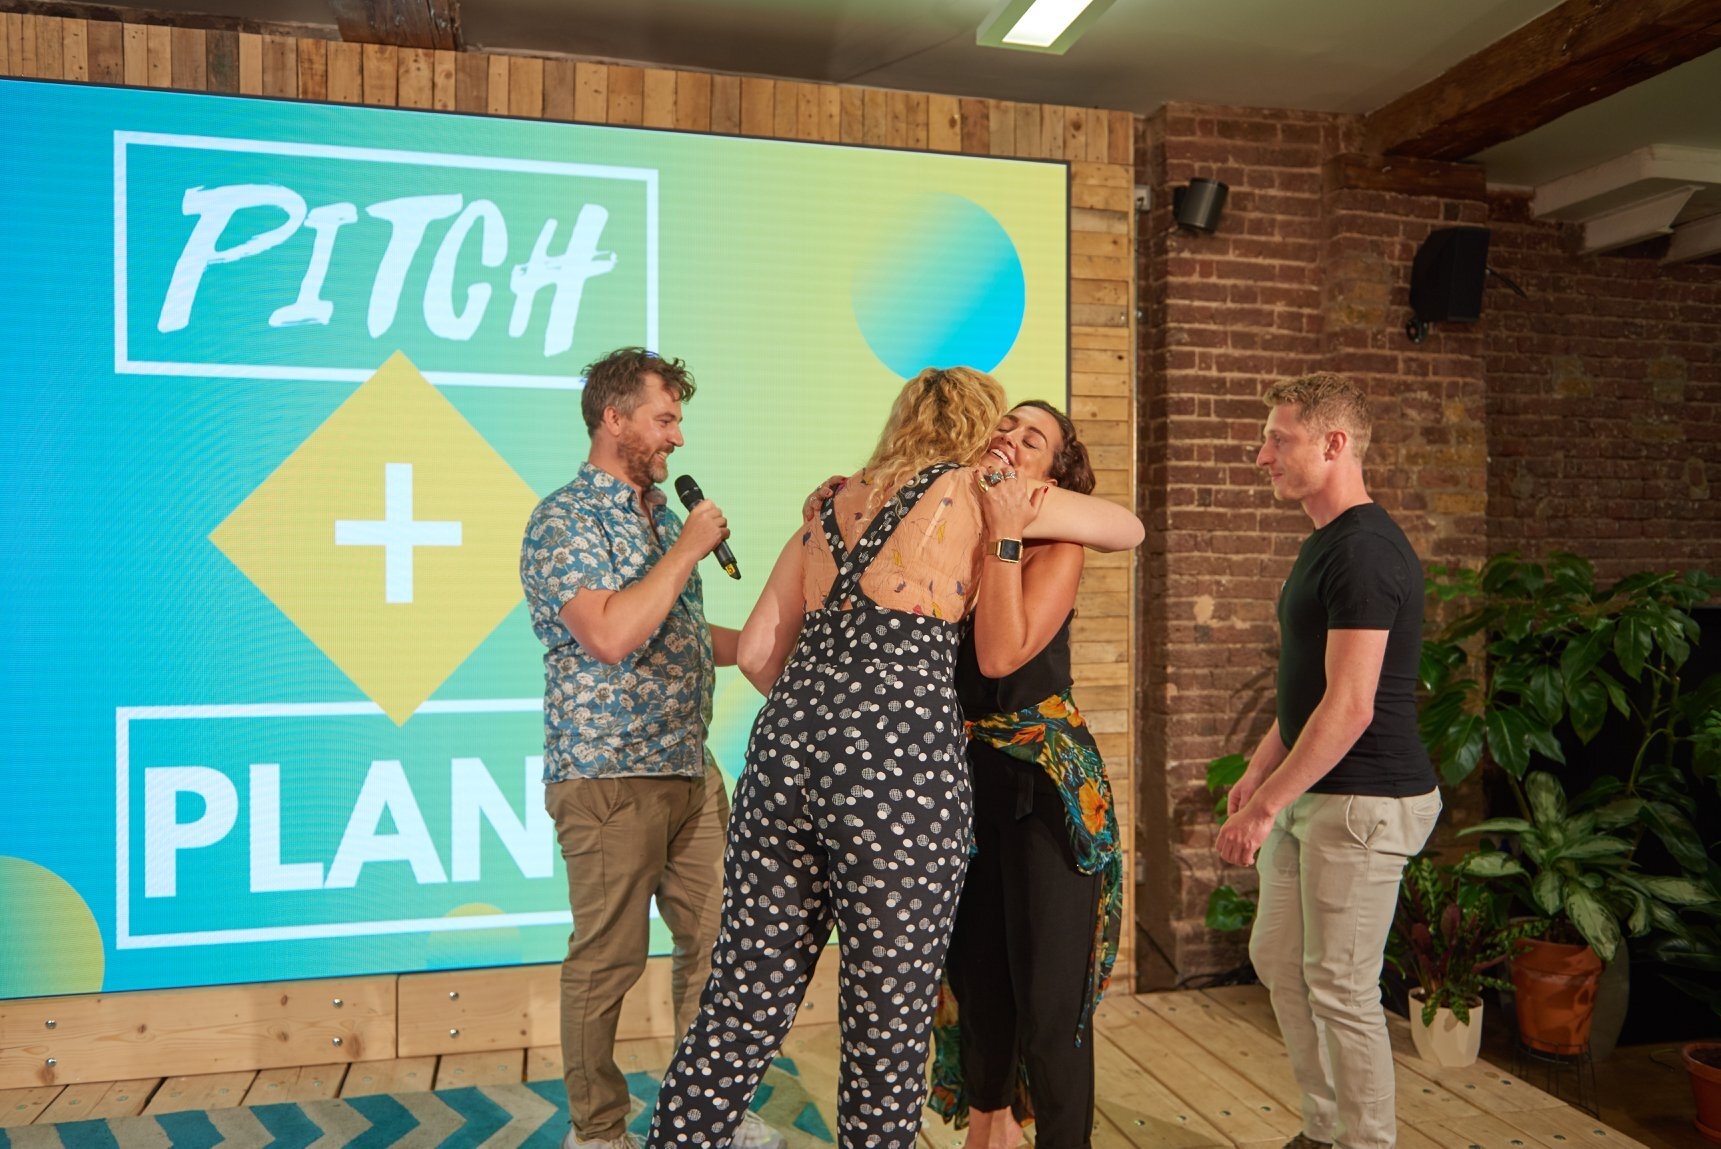 Well Bean Co were one of the winners of Pitch + Plant 2019